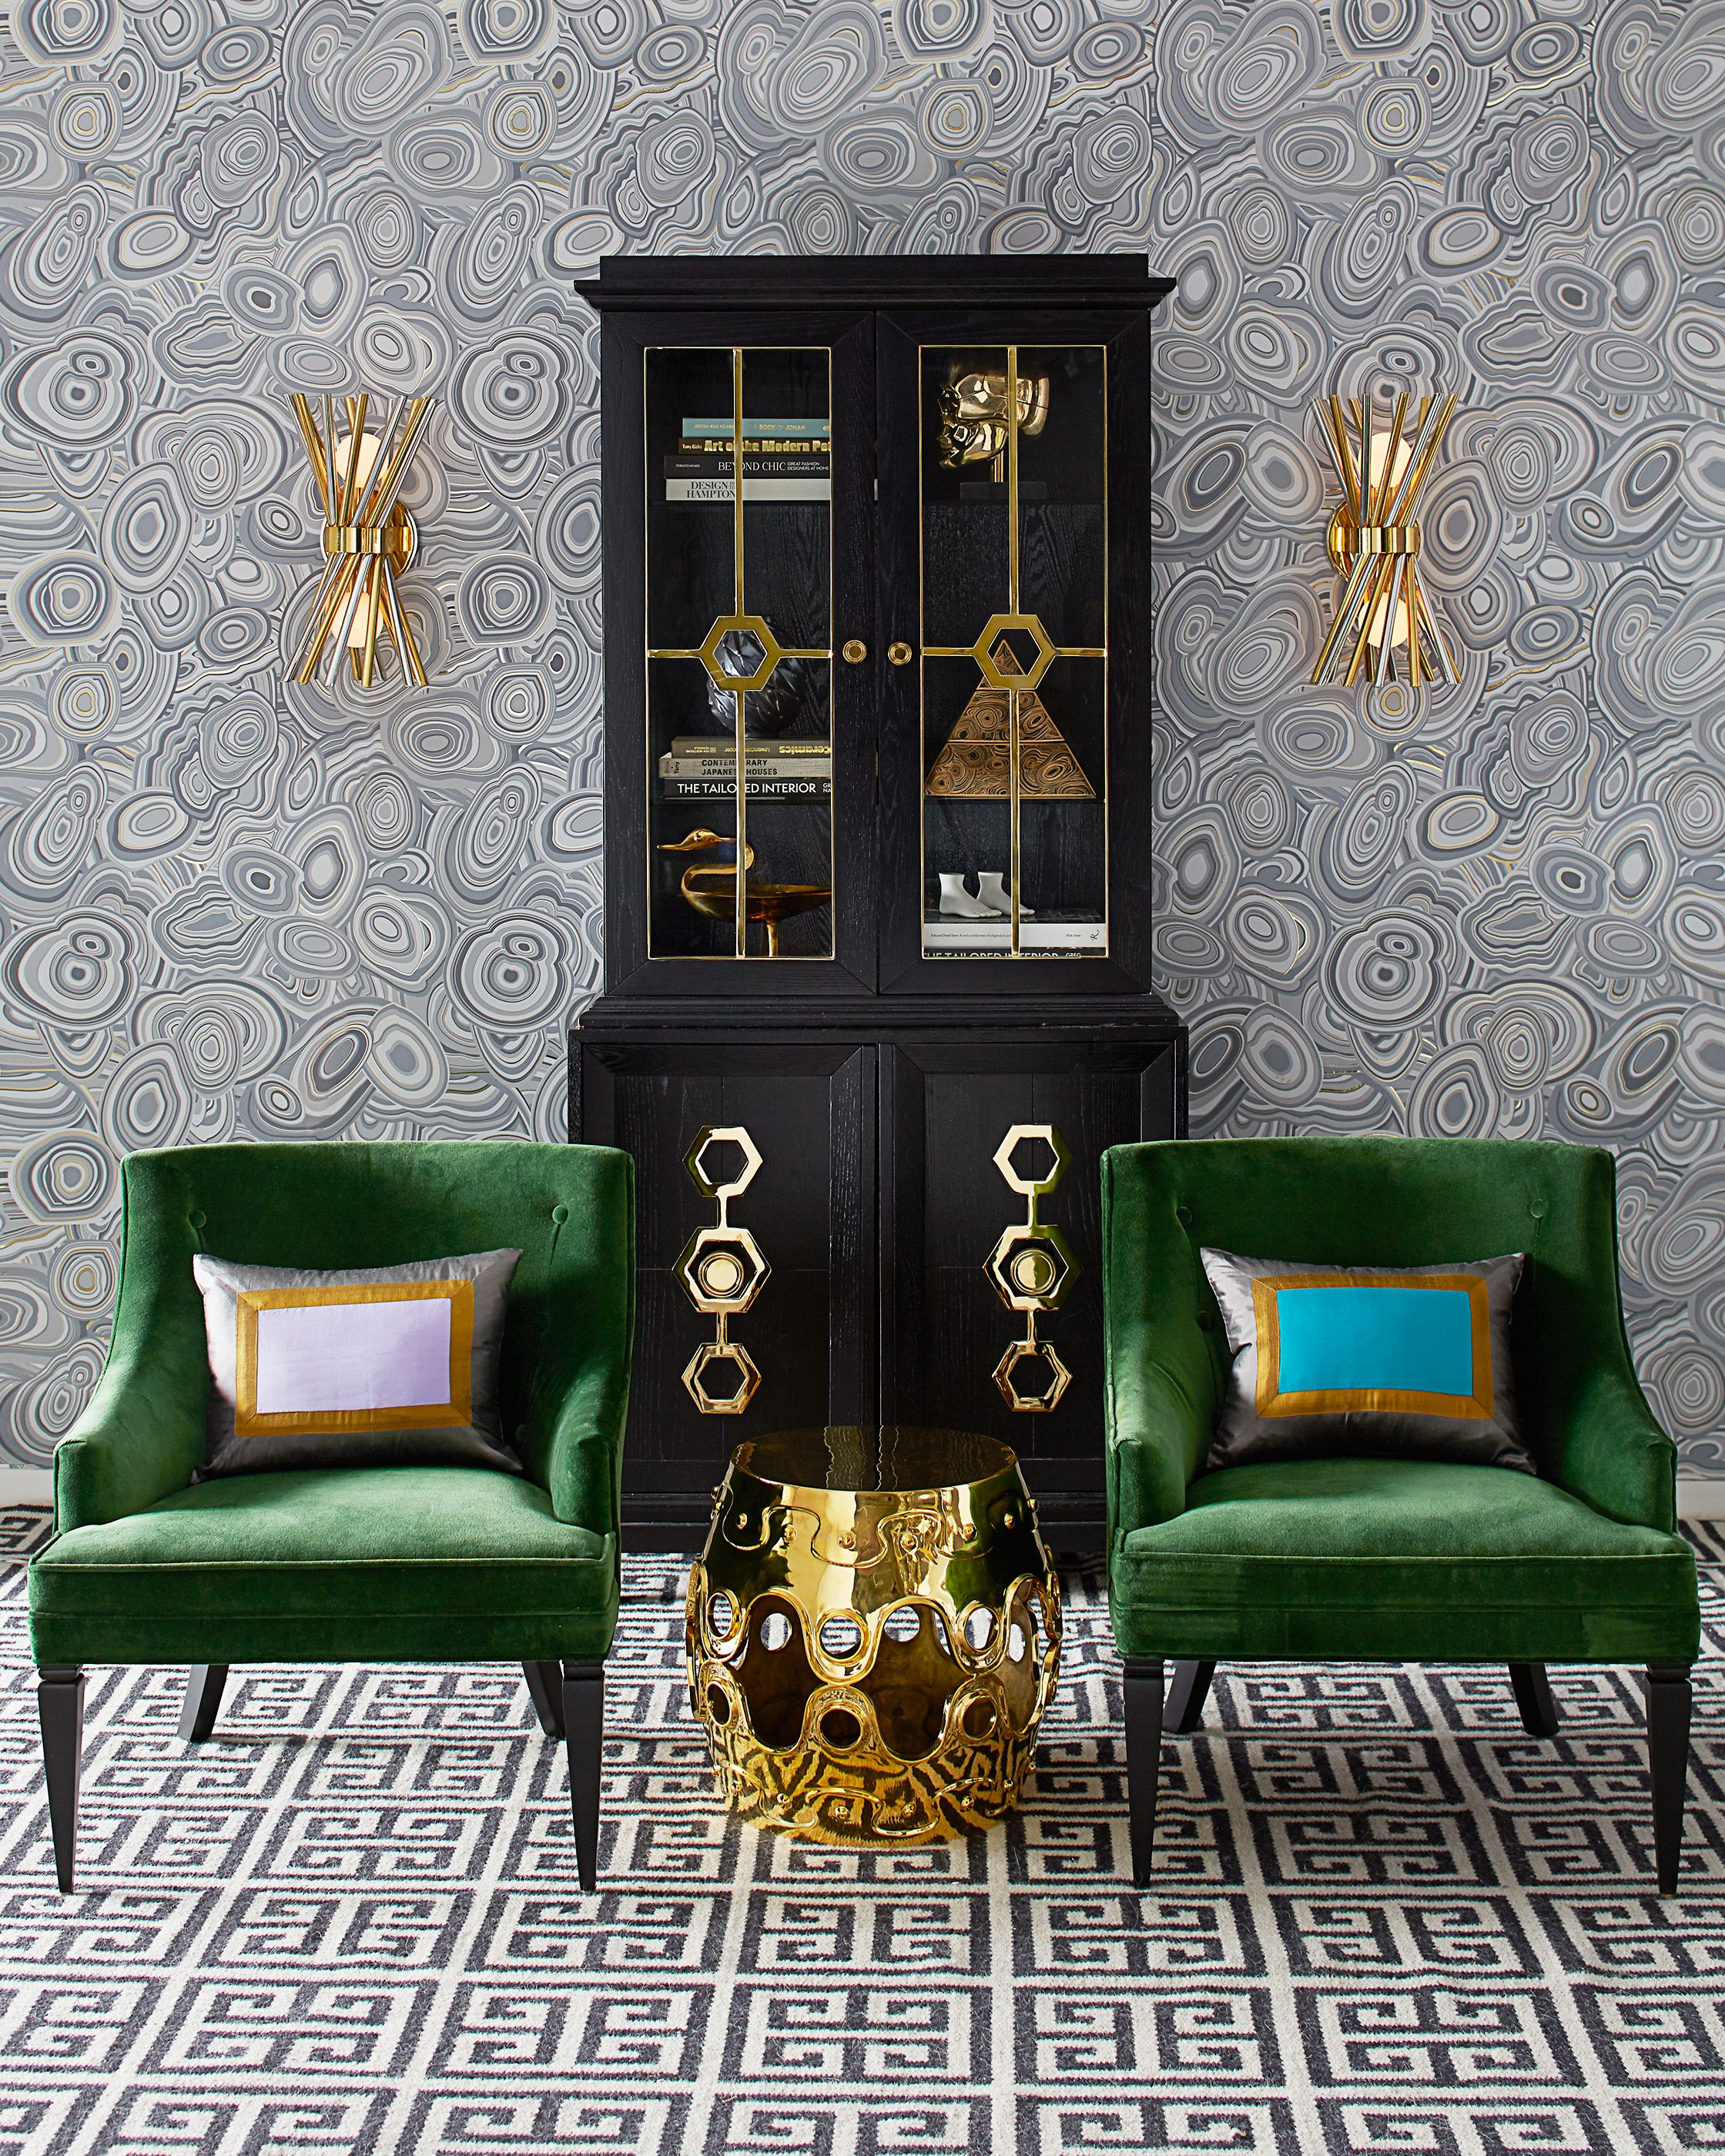 View More Jonathan Adler Furniture Lighting And Decorative Accessories That Embody A Modern American Glamour Style